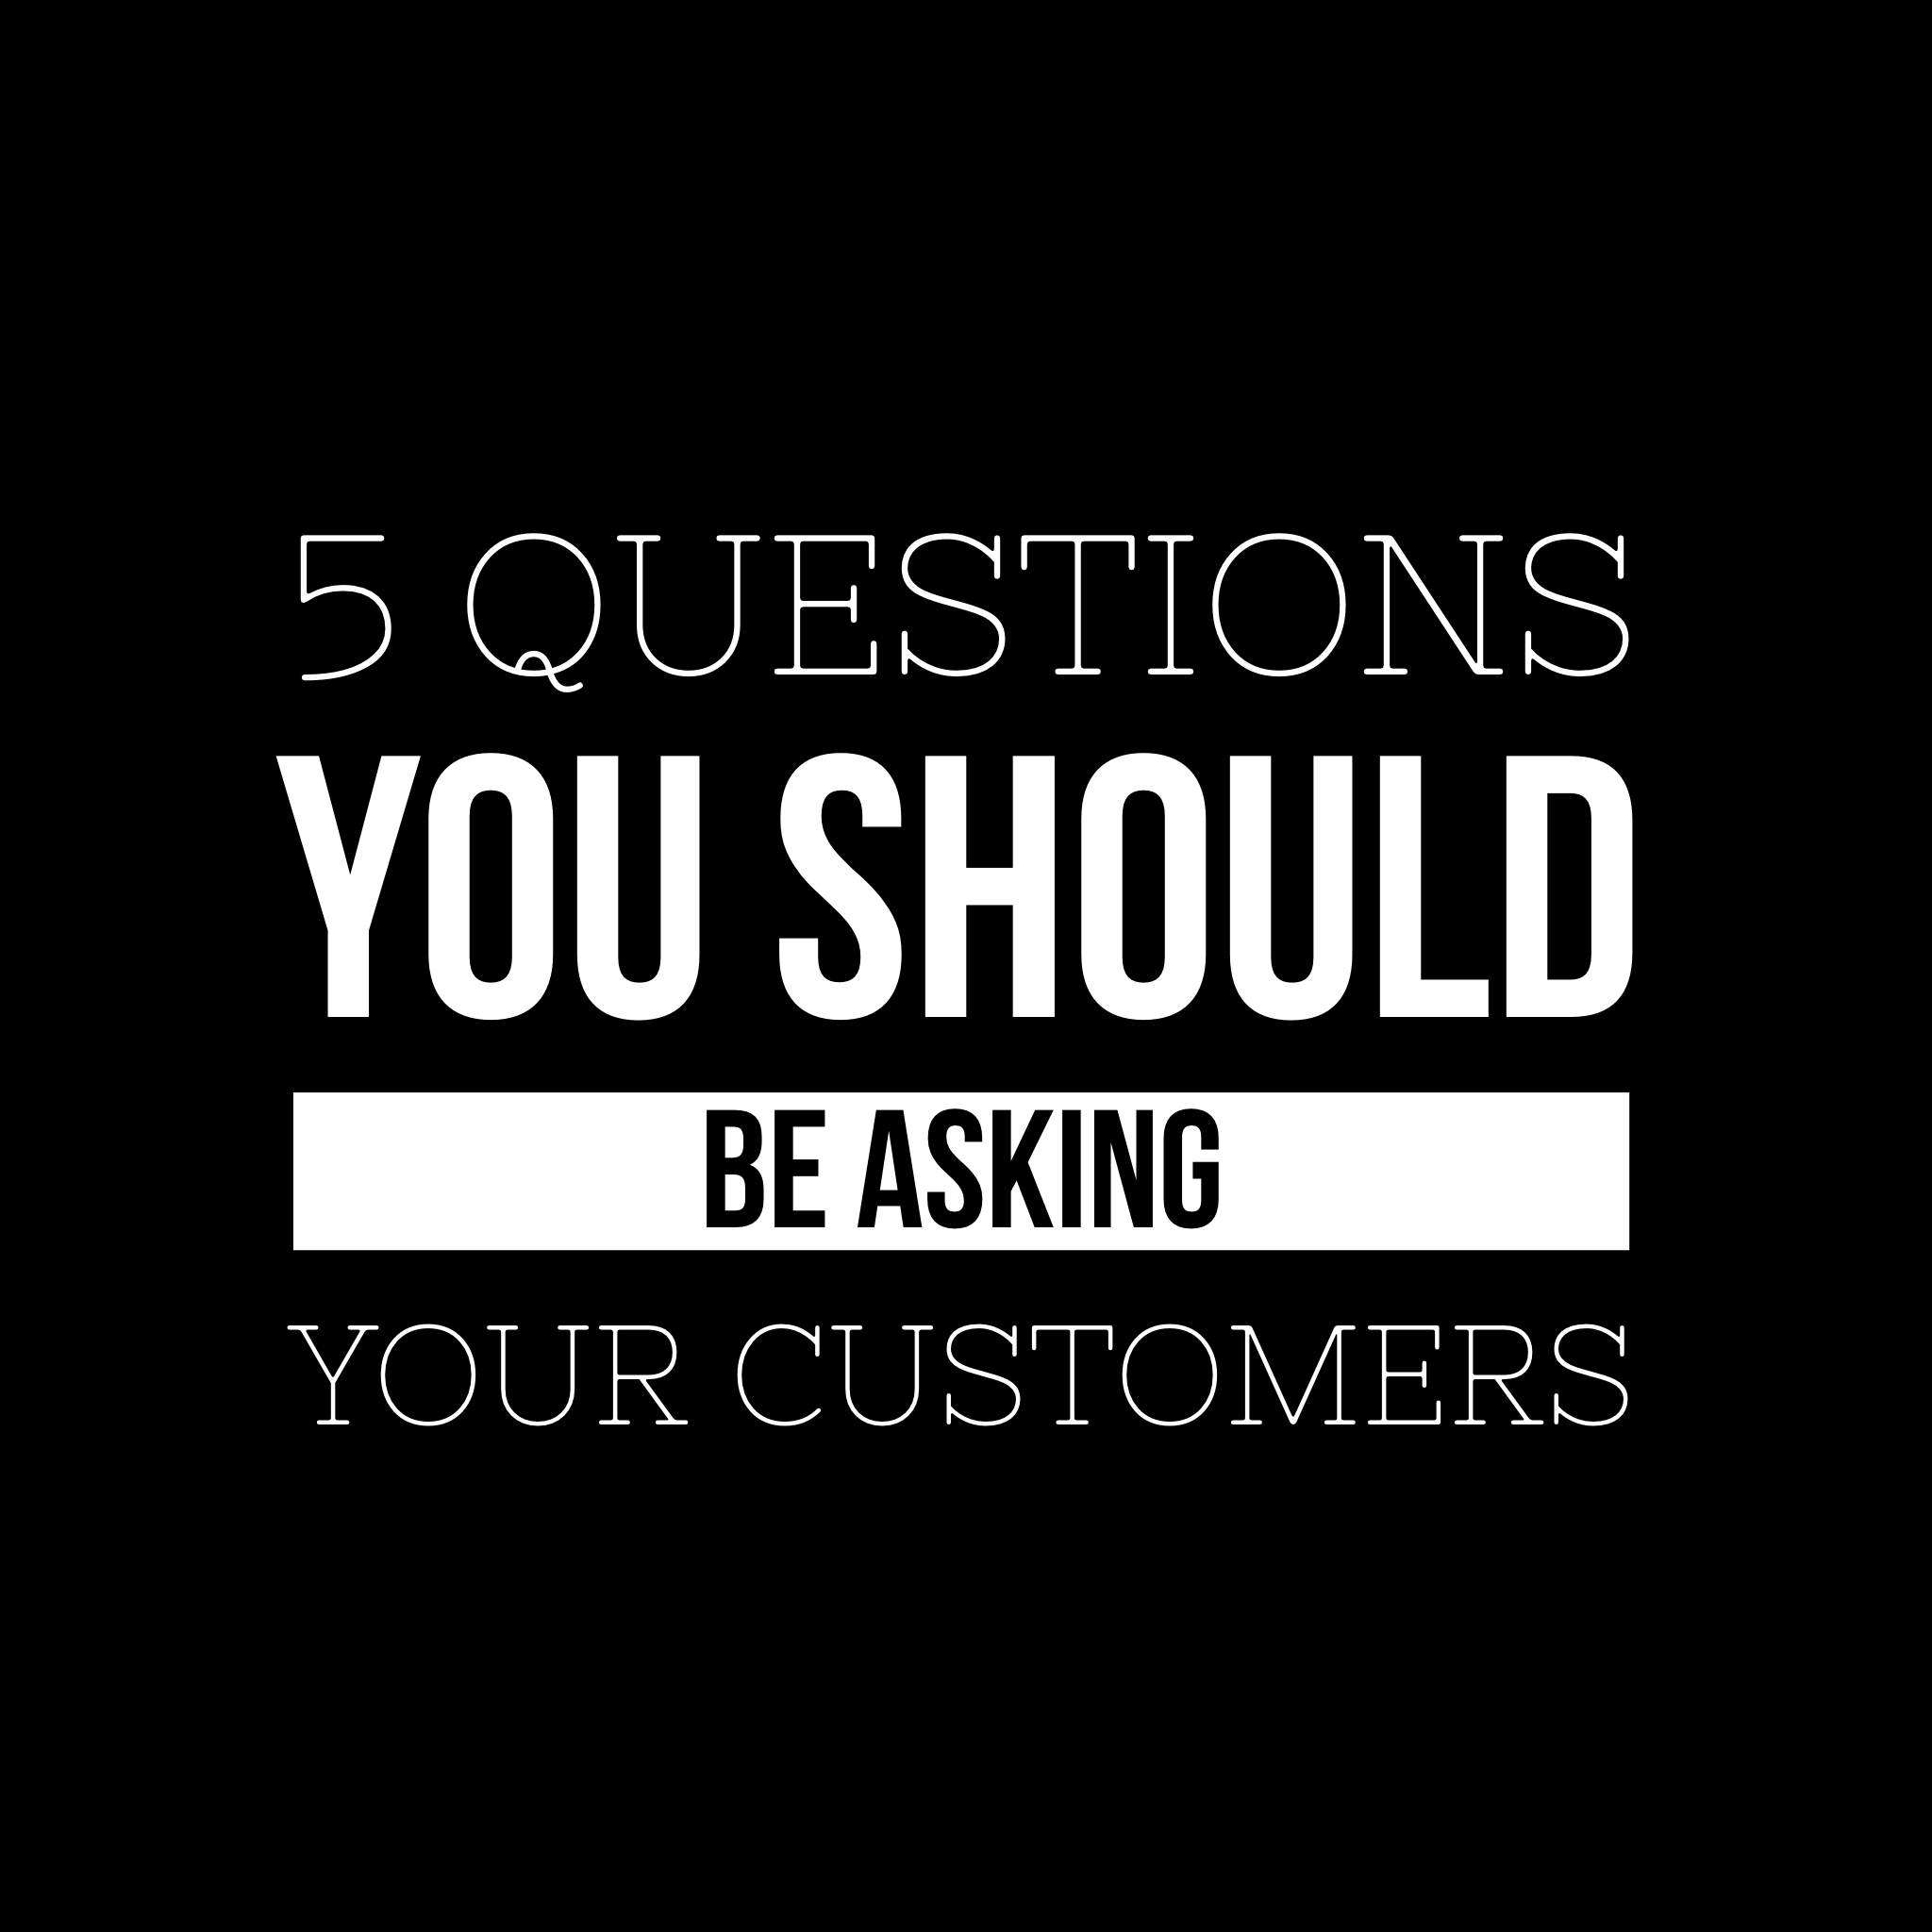 5 Questions You Should Be Asking Your Customers